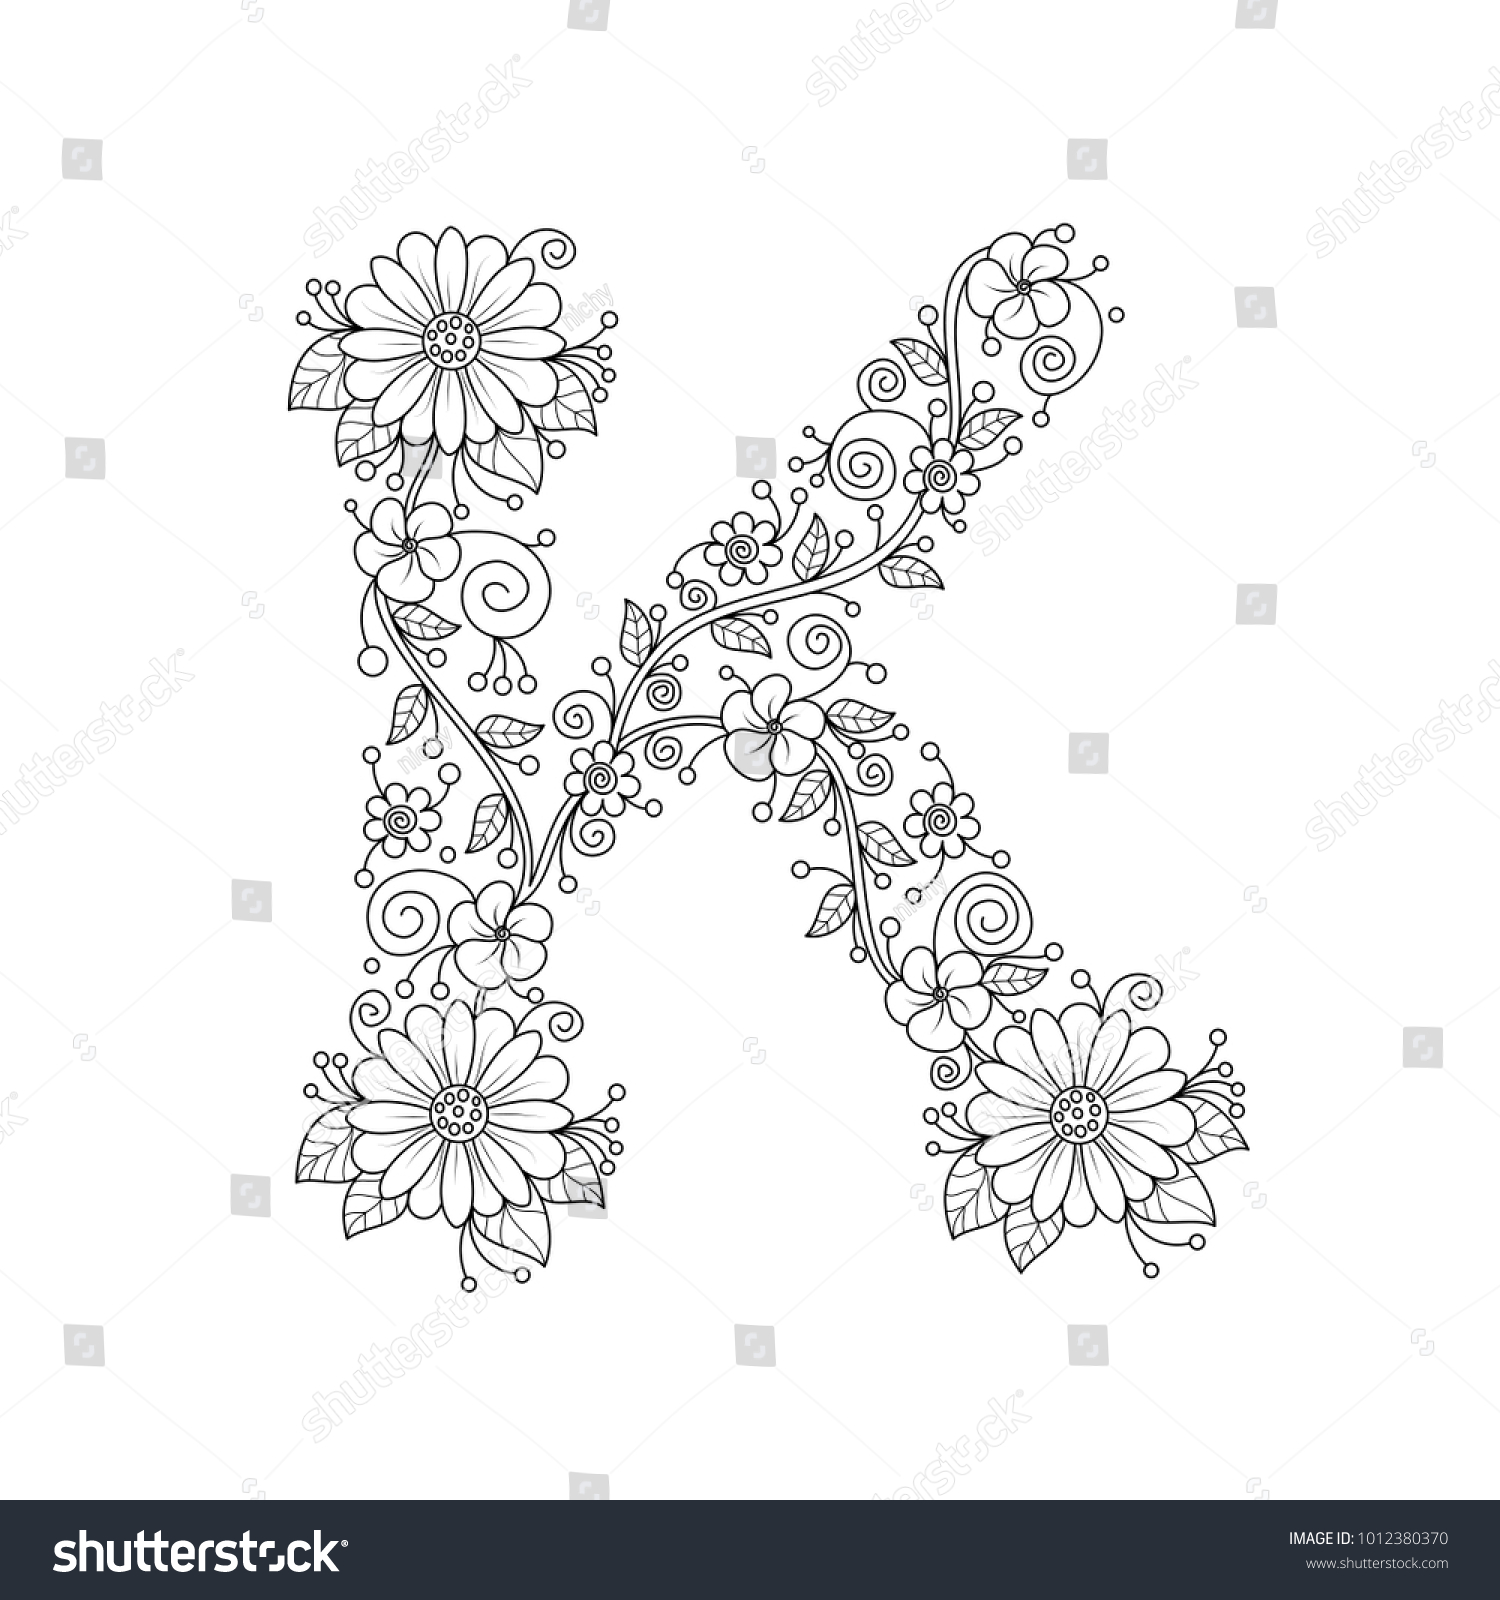 Floral Alphabet Letter K Coloring Book Stock Vector (Royalty Free ...